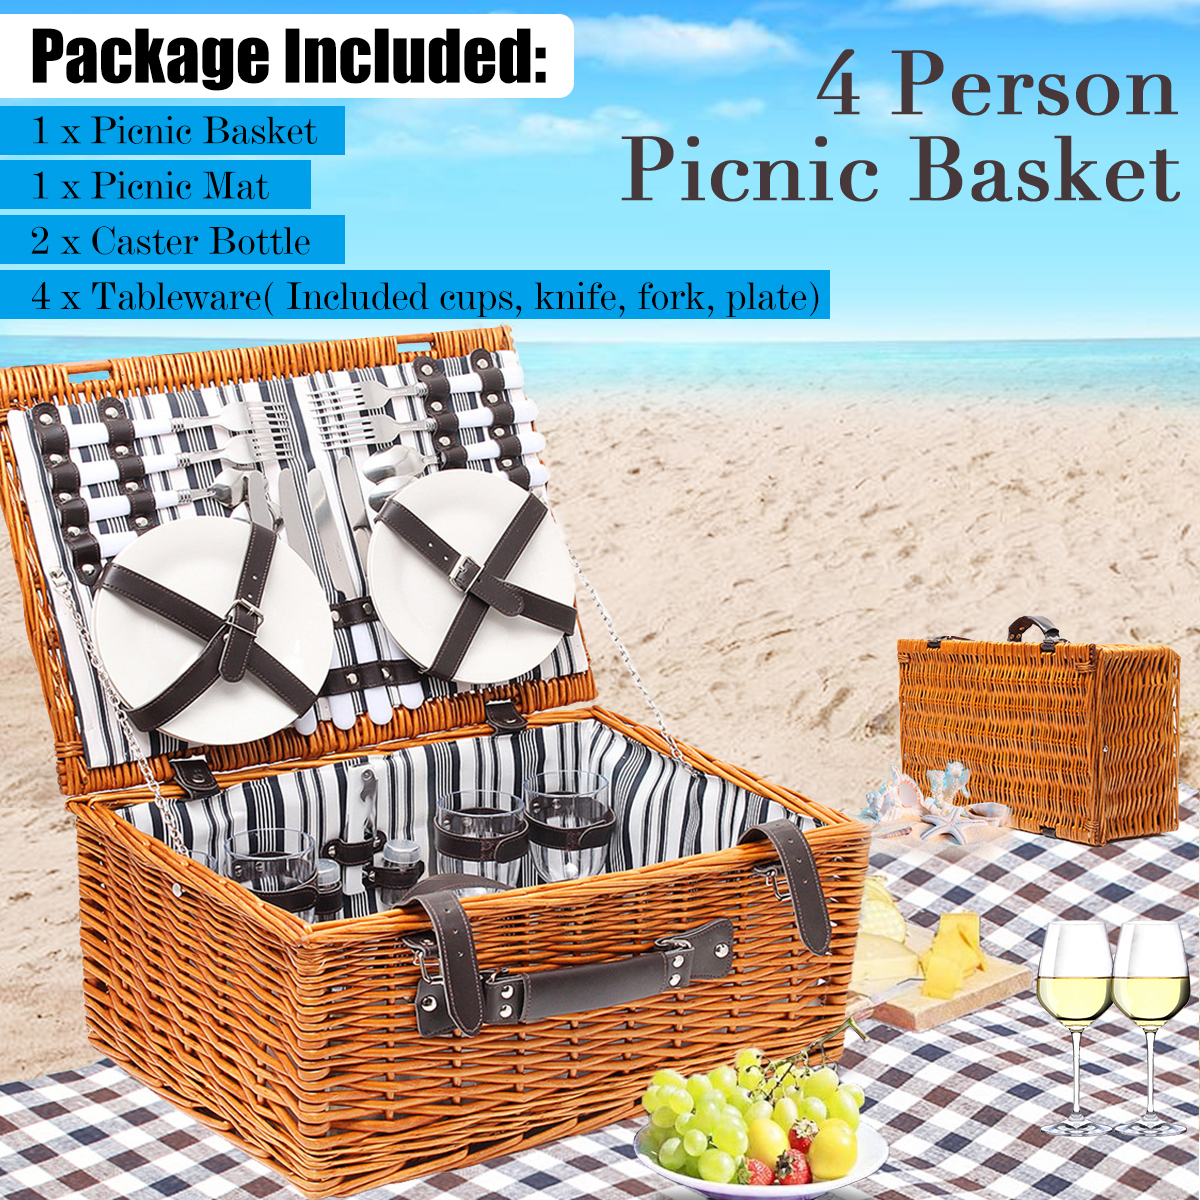 4-Person Picnic Food Drink Wicker Basket Set Outdoor Trip Travel With Picnic Mat /Tableware Set Camping Picnic Party Accessories